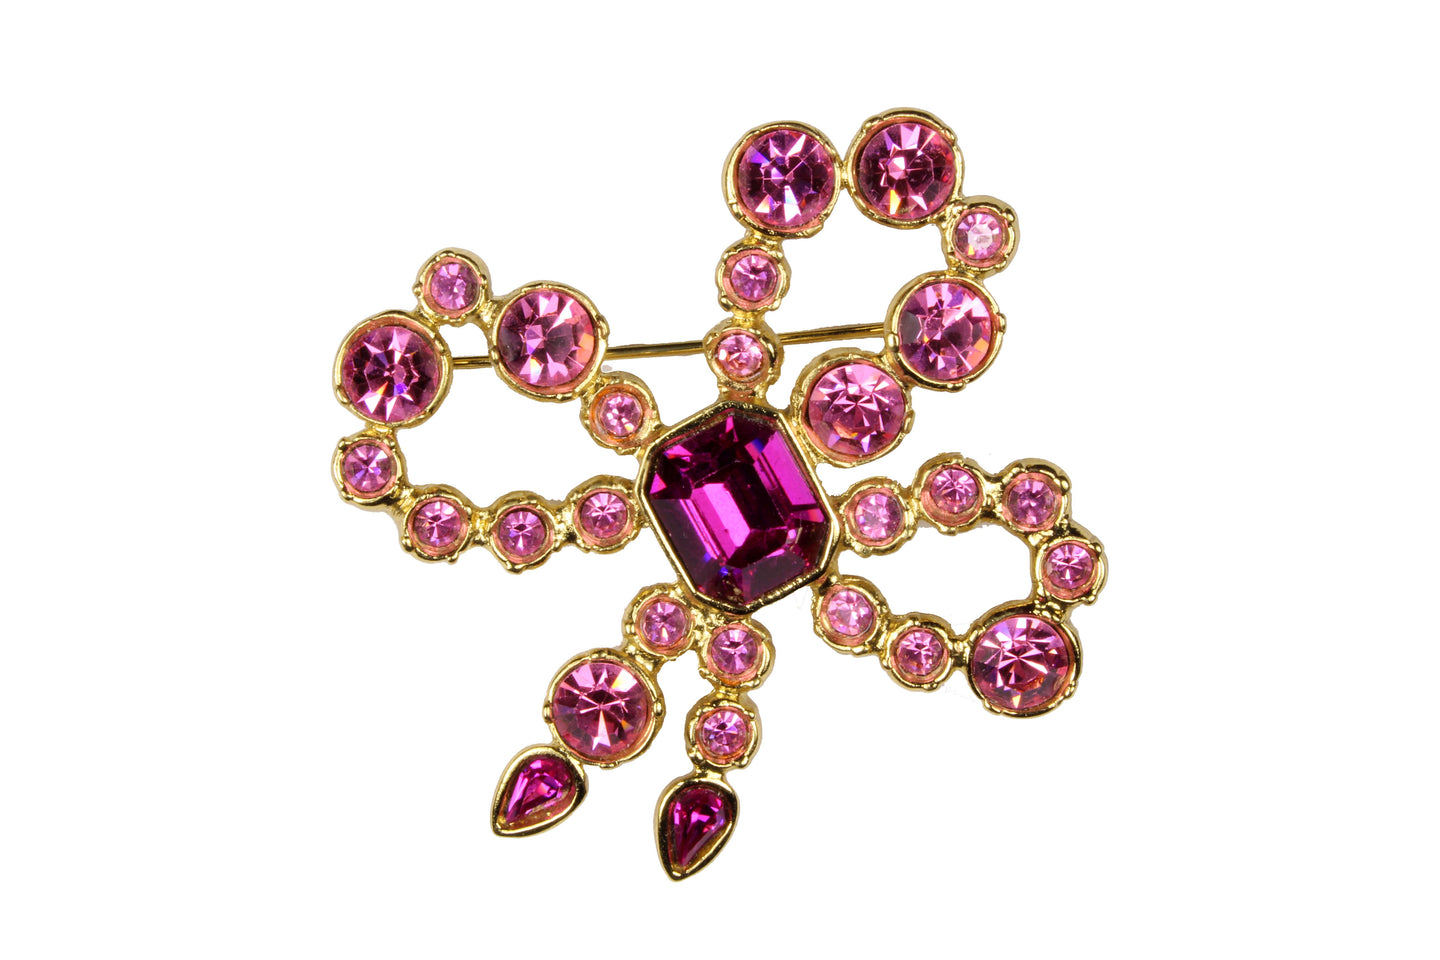 YVES SAINT LAURENT pink bow brooch